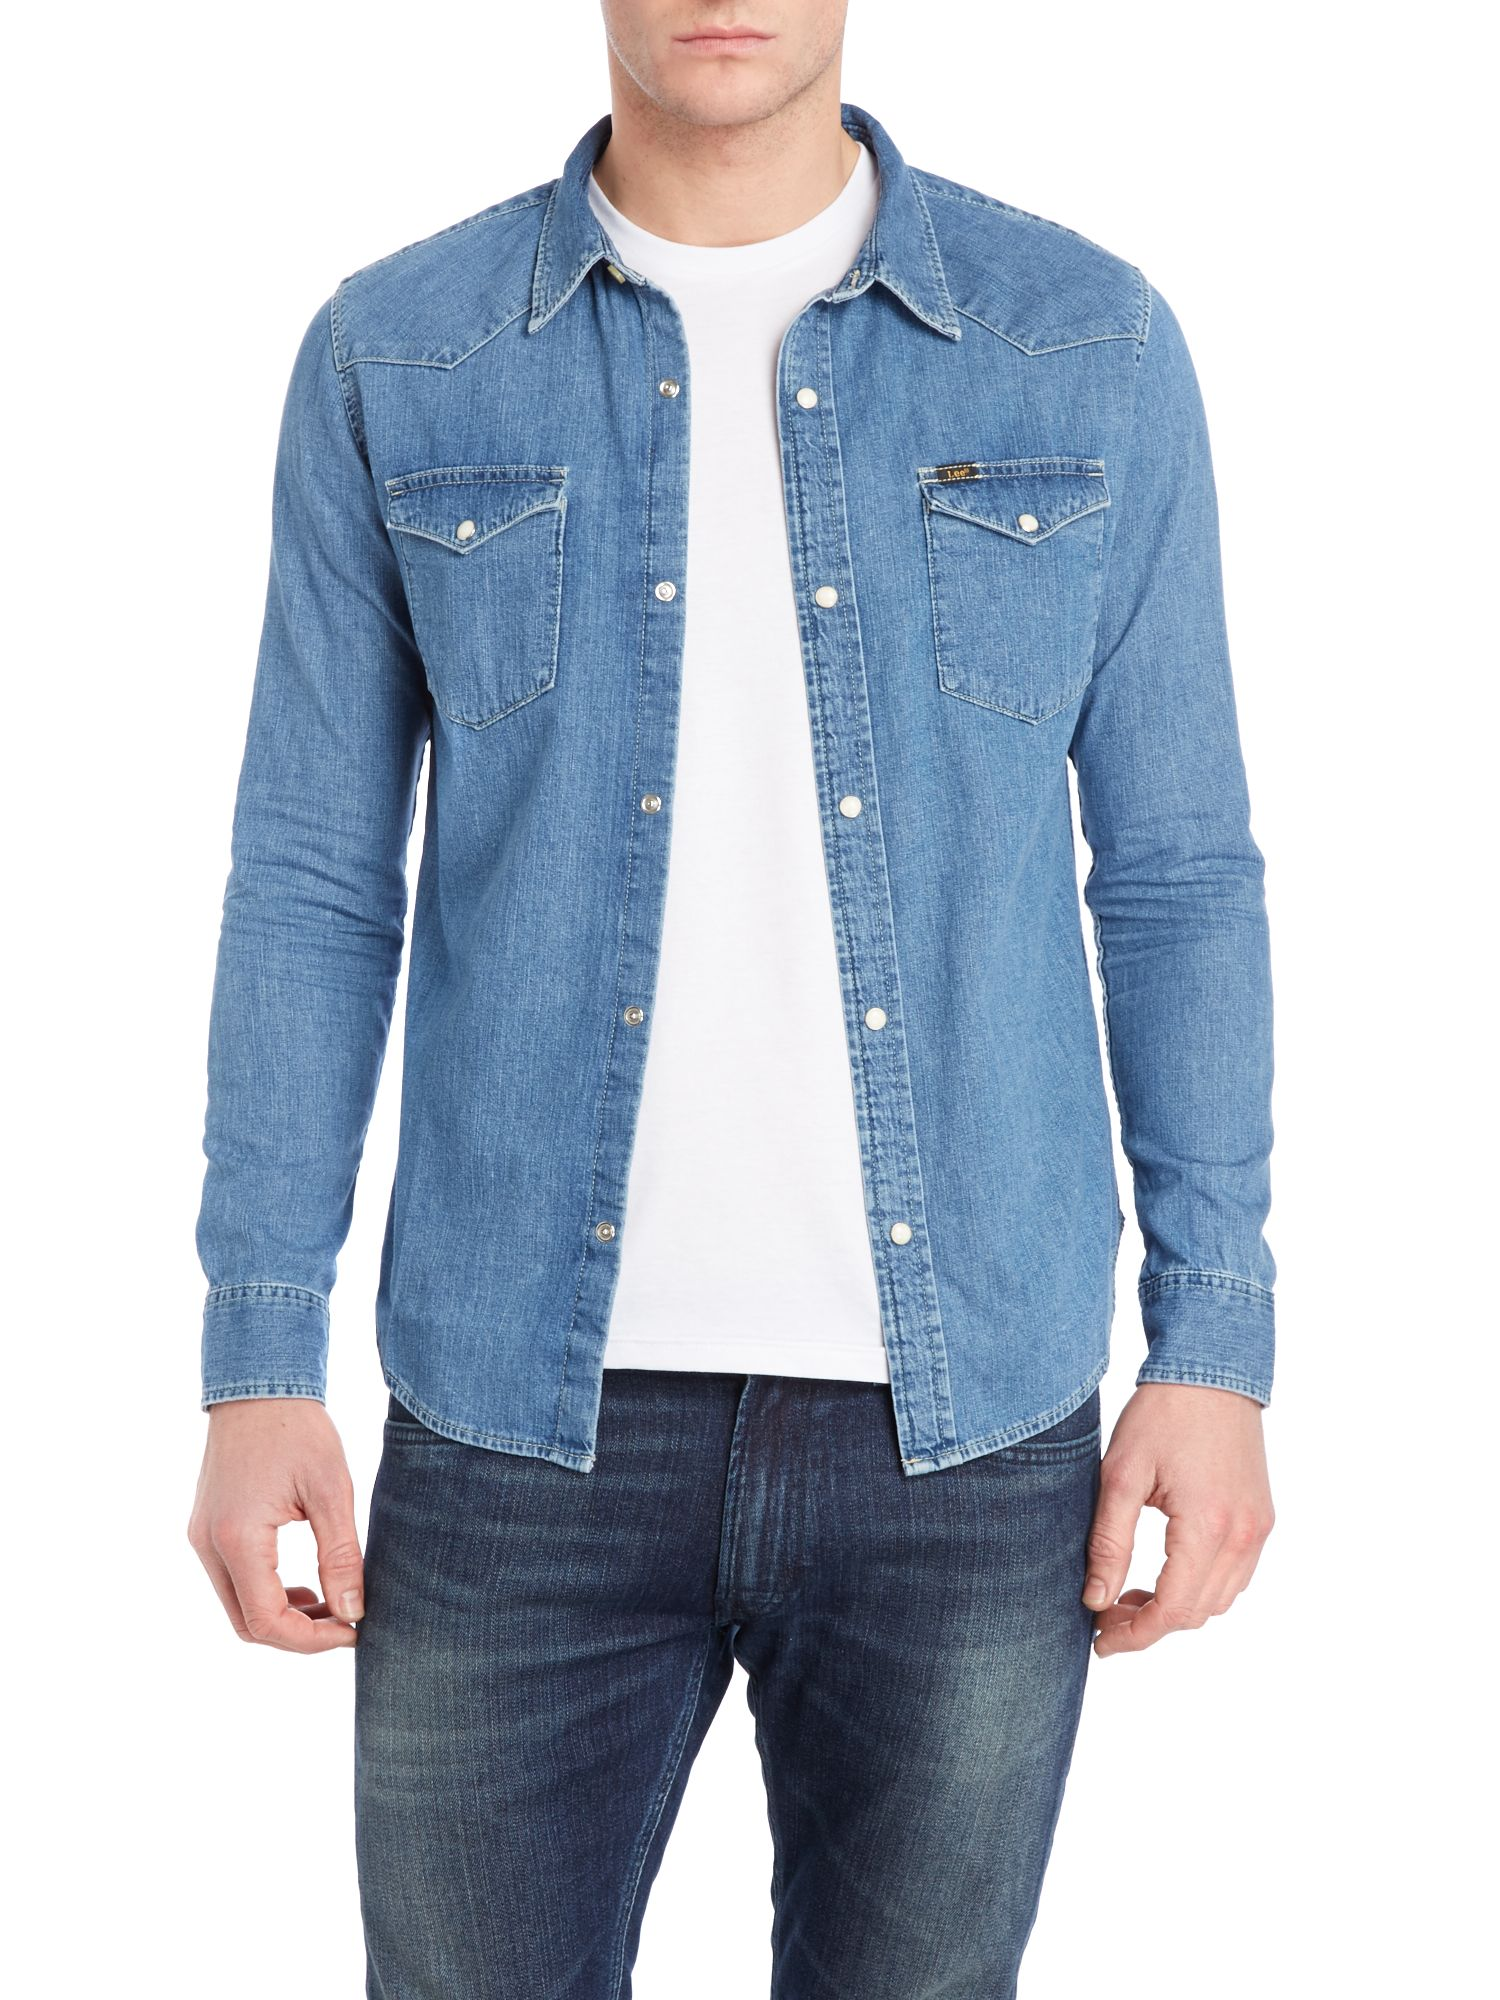 Two pocket light washed denim shirt